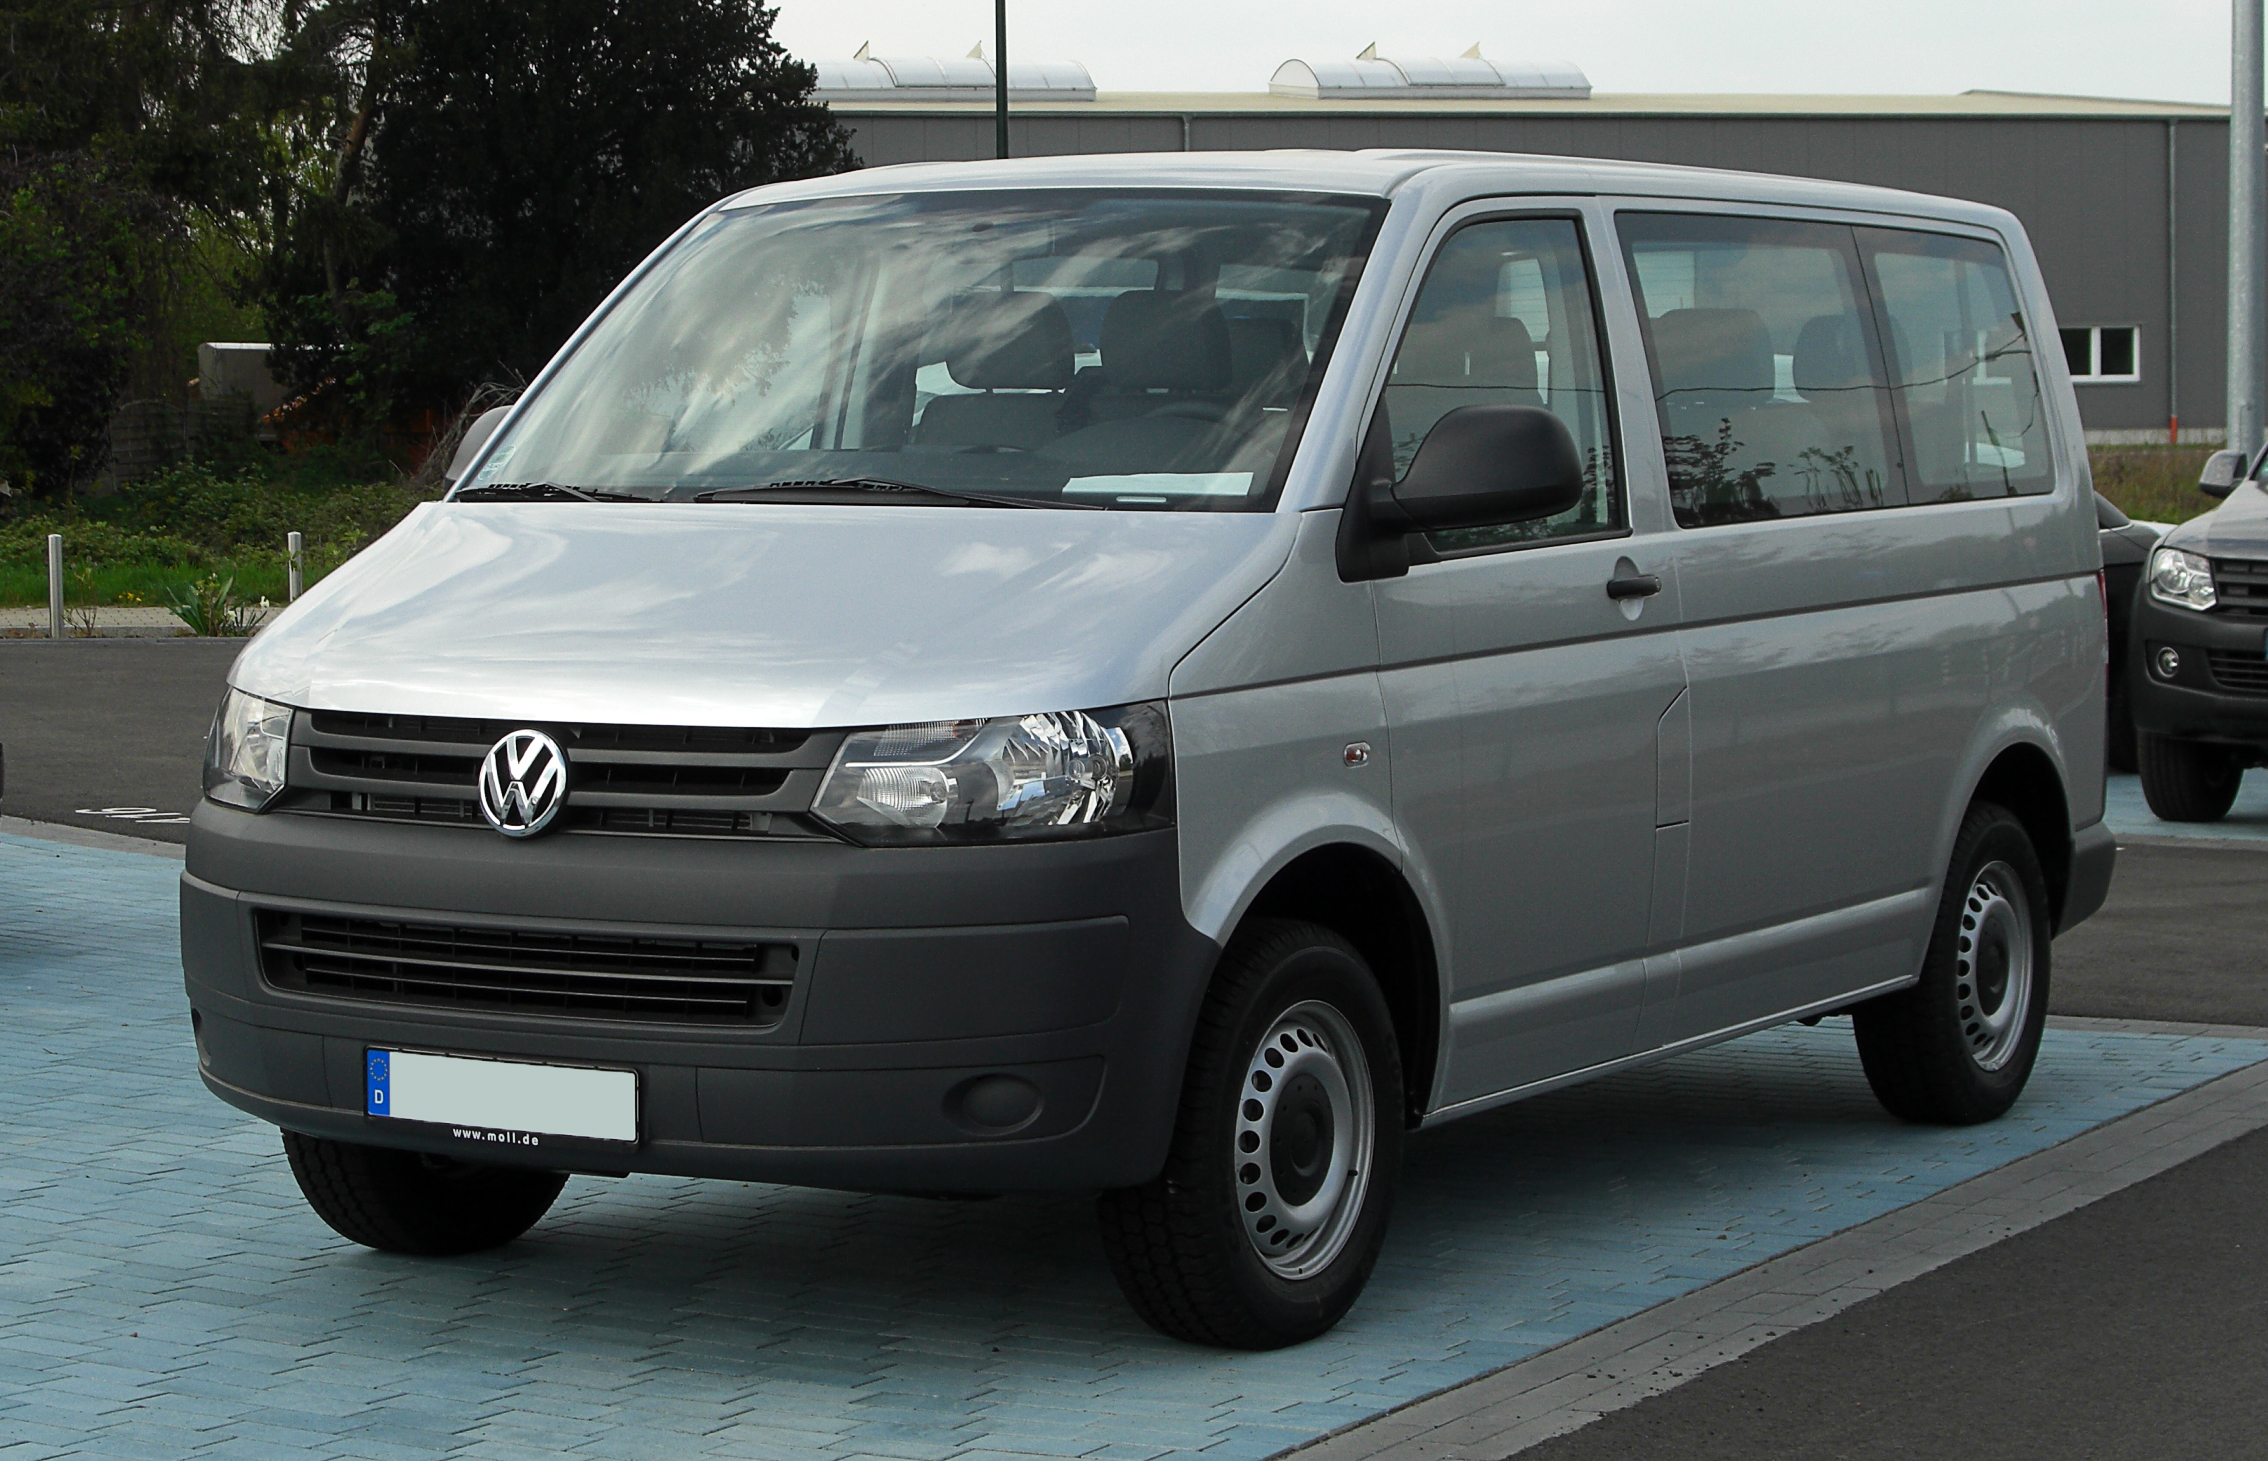 file vw transporter kombi 2 0 tdi t5 facelift. Black Bedroom Furniture Sets. Home Design Ideas